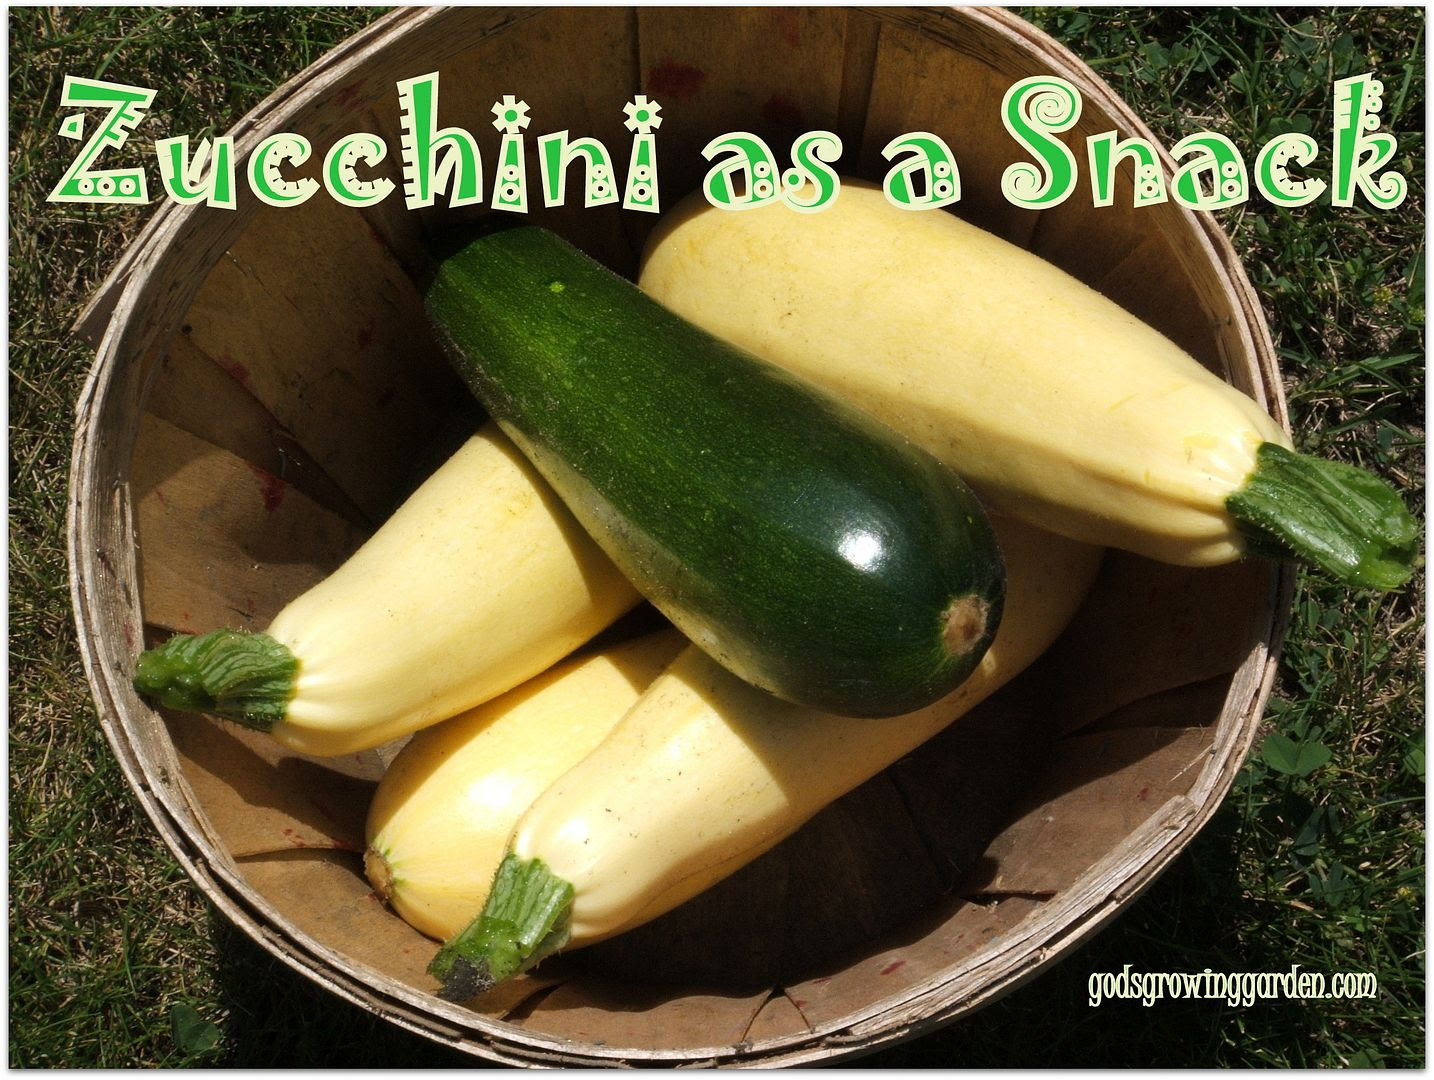 Zucchini by Angie Ouellette-Tower for godsgrowinggarden.com photo 014_zpscea0a345.jpg